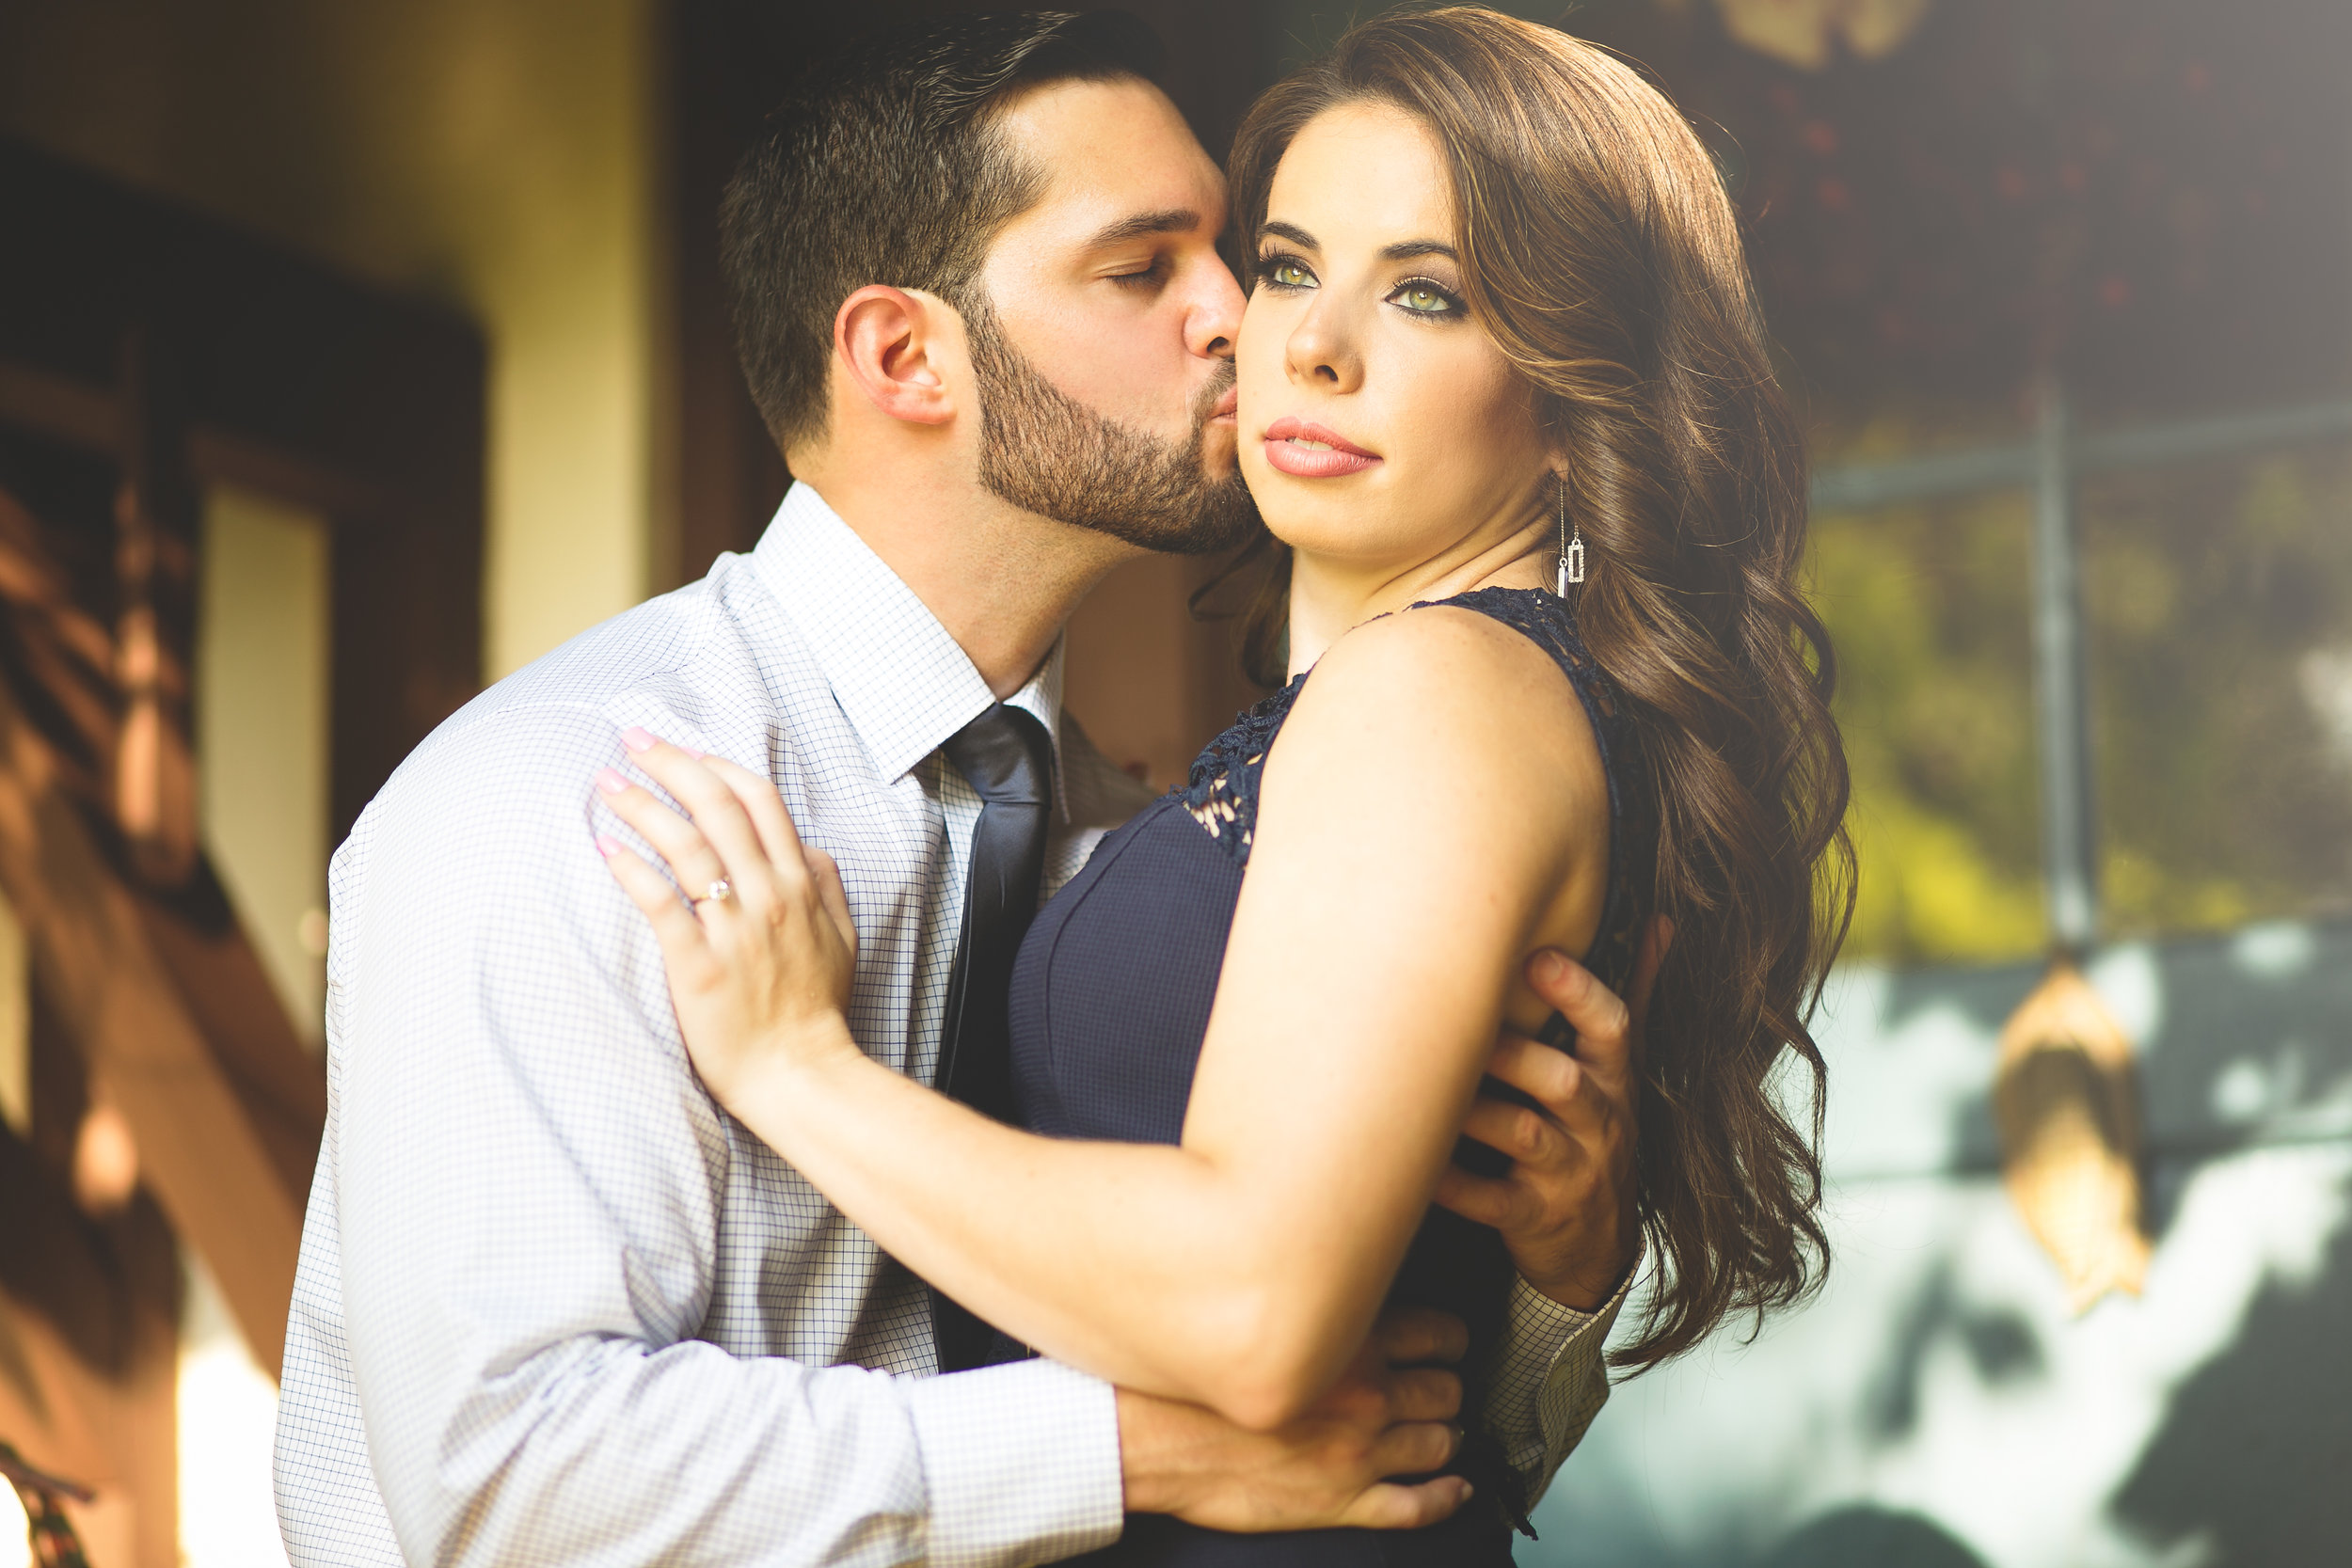 Portfolio-Engagement-08-Dipp Photography-0345-Edit.jpg